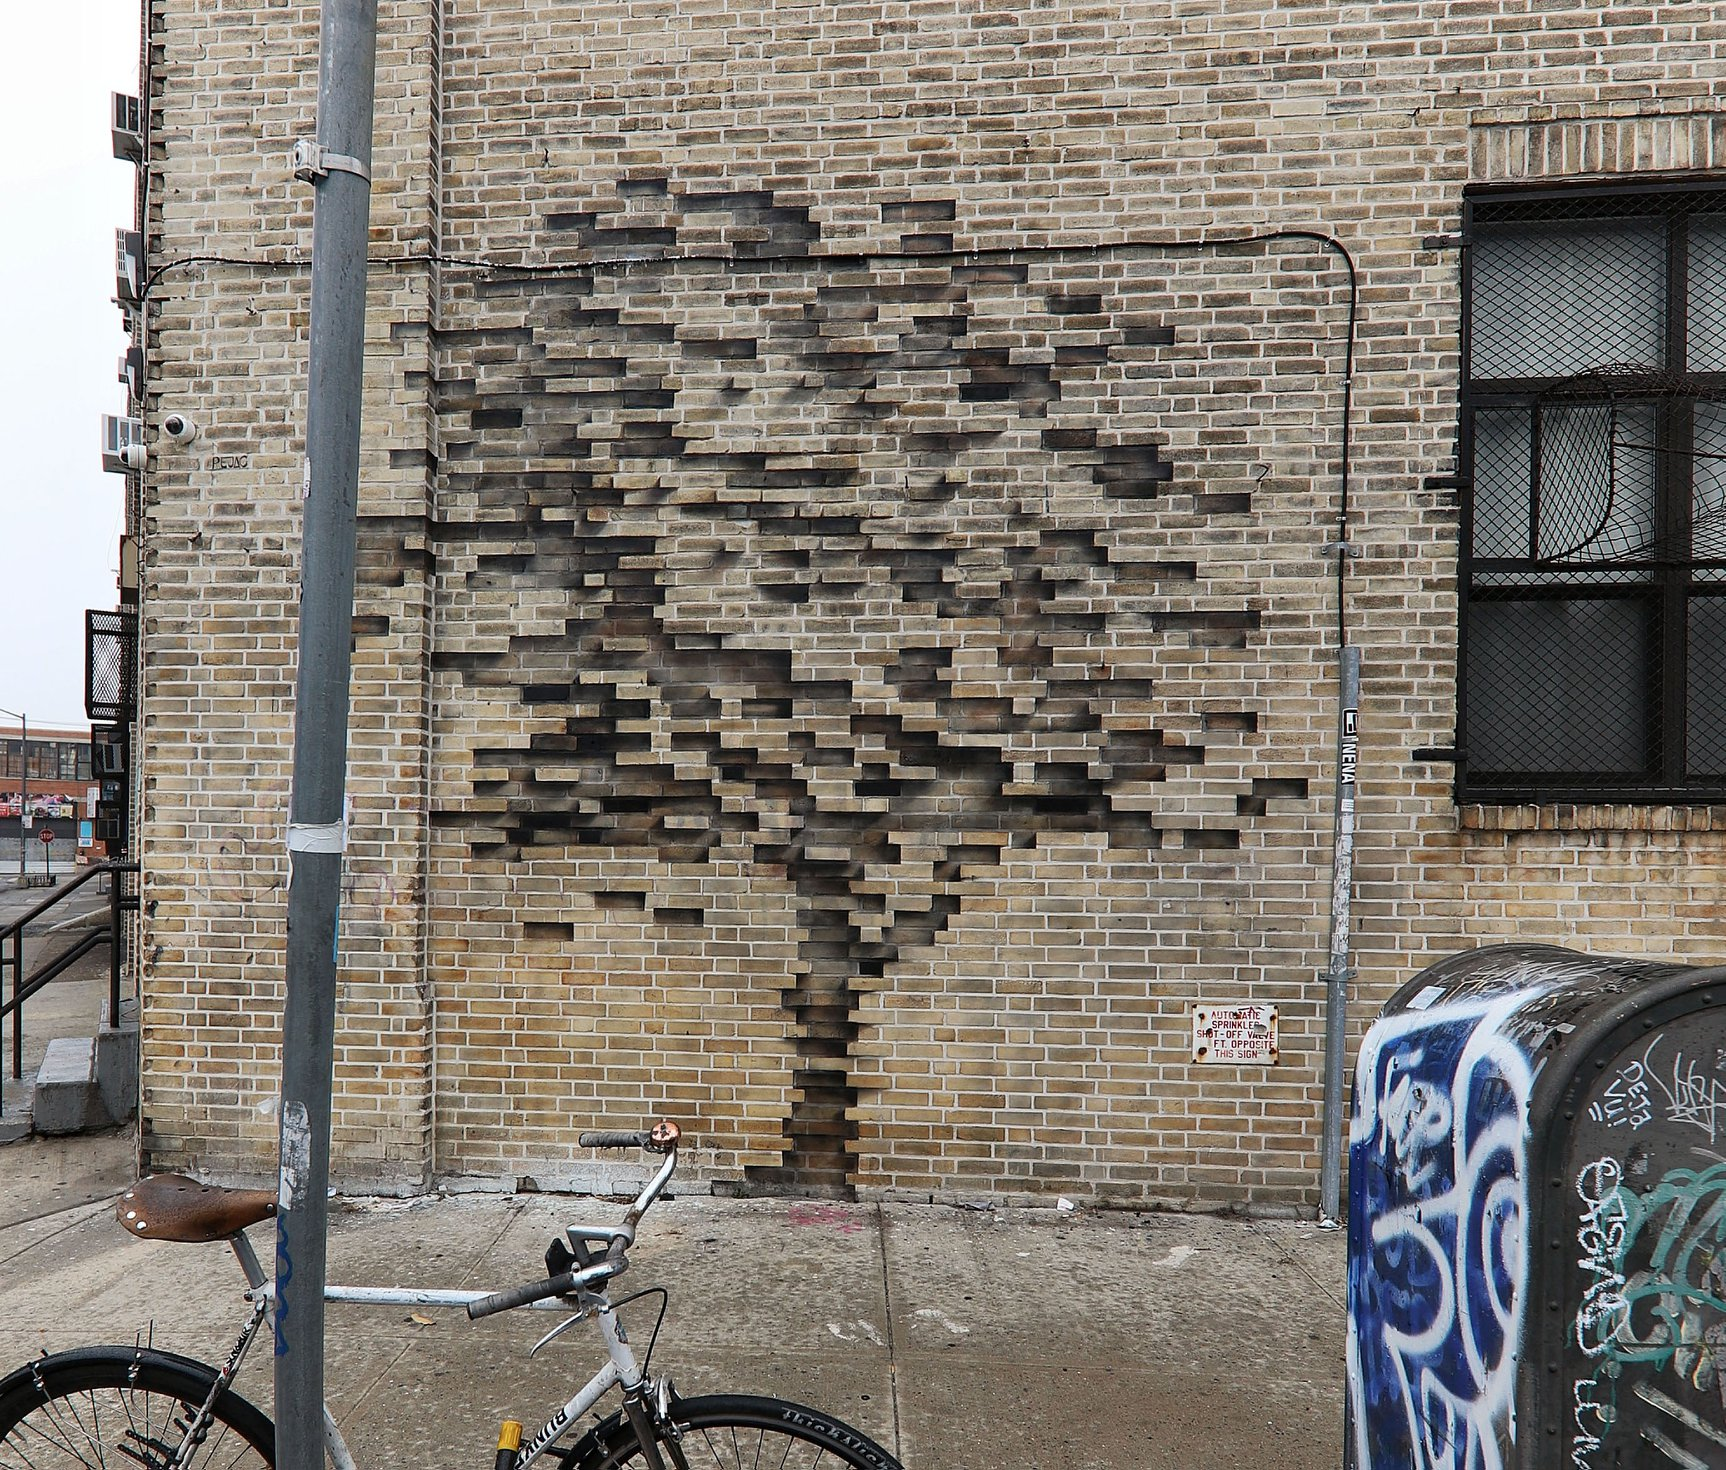 Street Art by Pejac - In Brooklyn, New York, USA